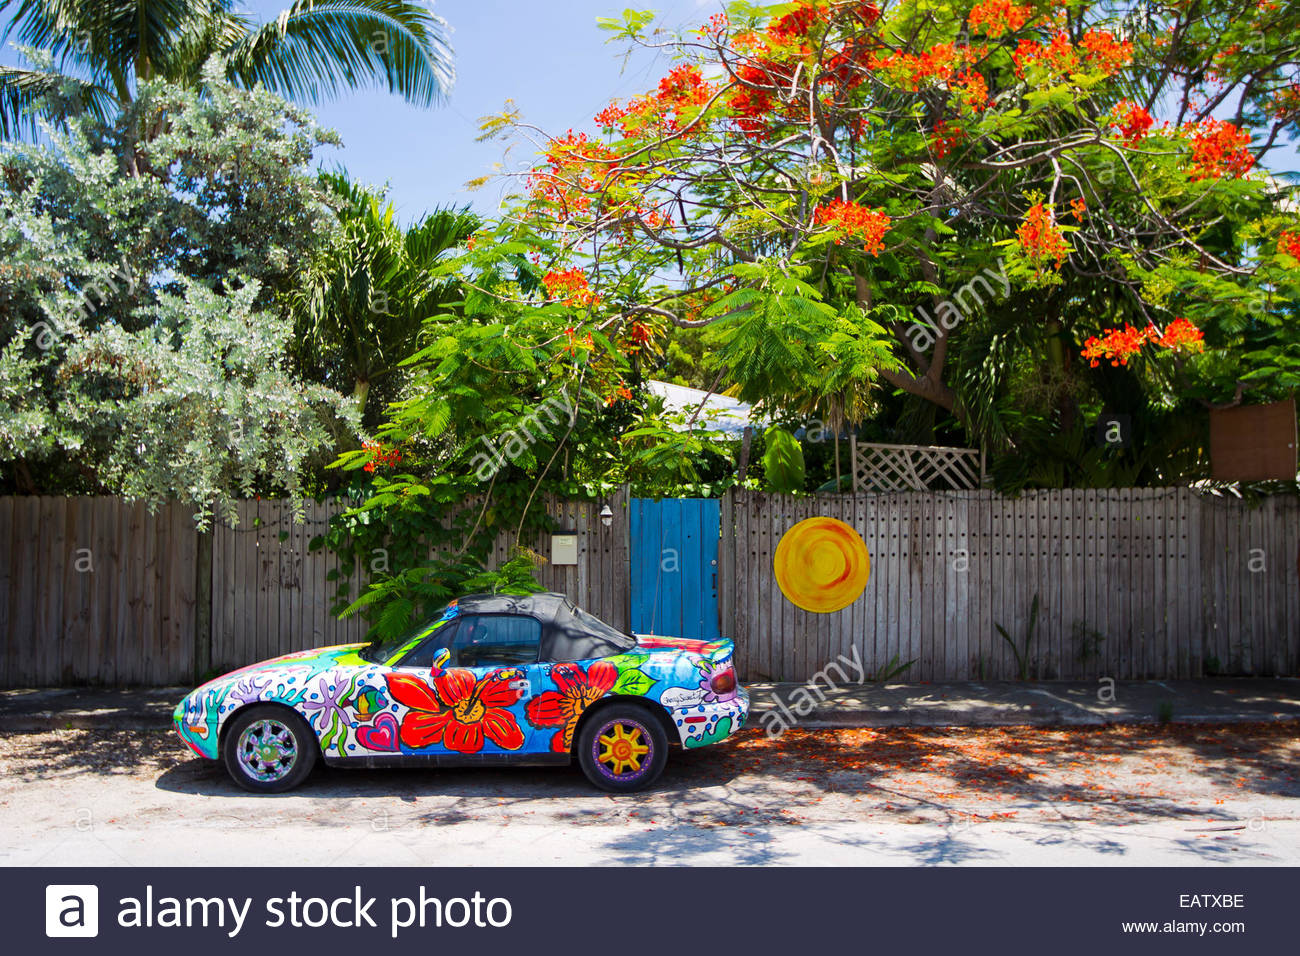 A colorful painted car with flowers is parked on the side walk next ...